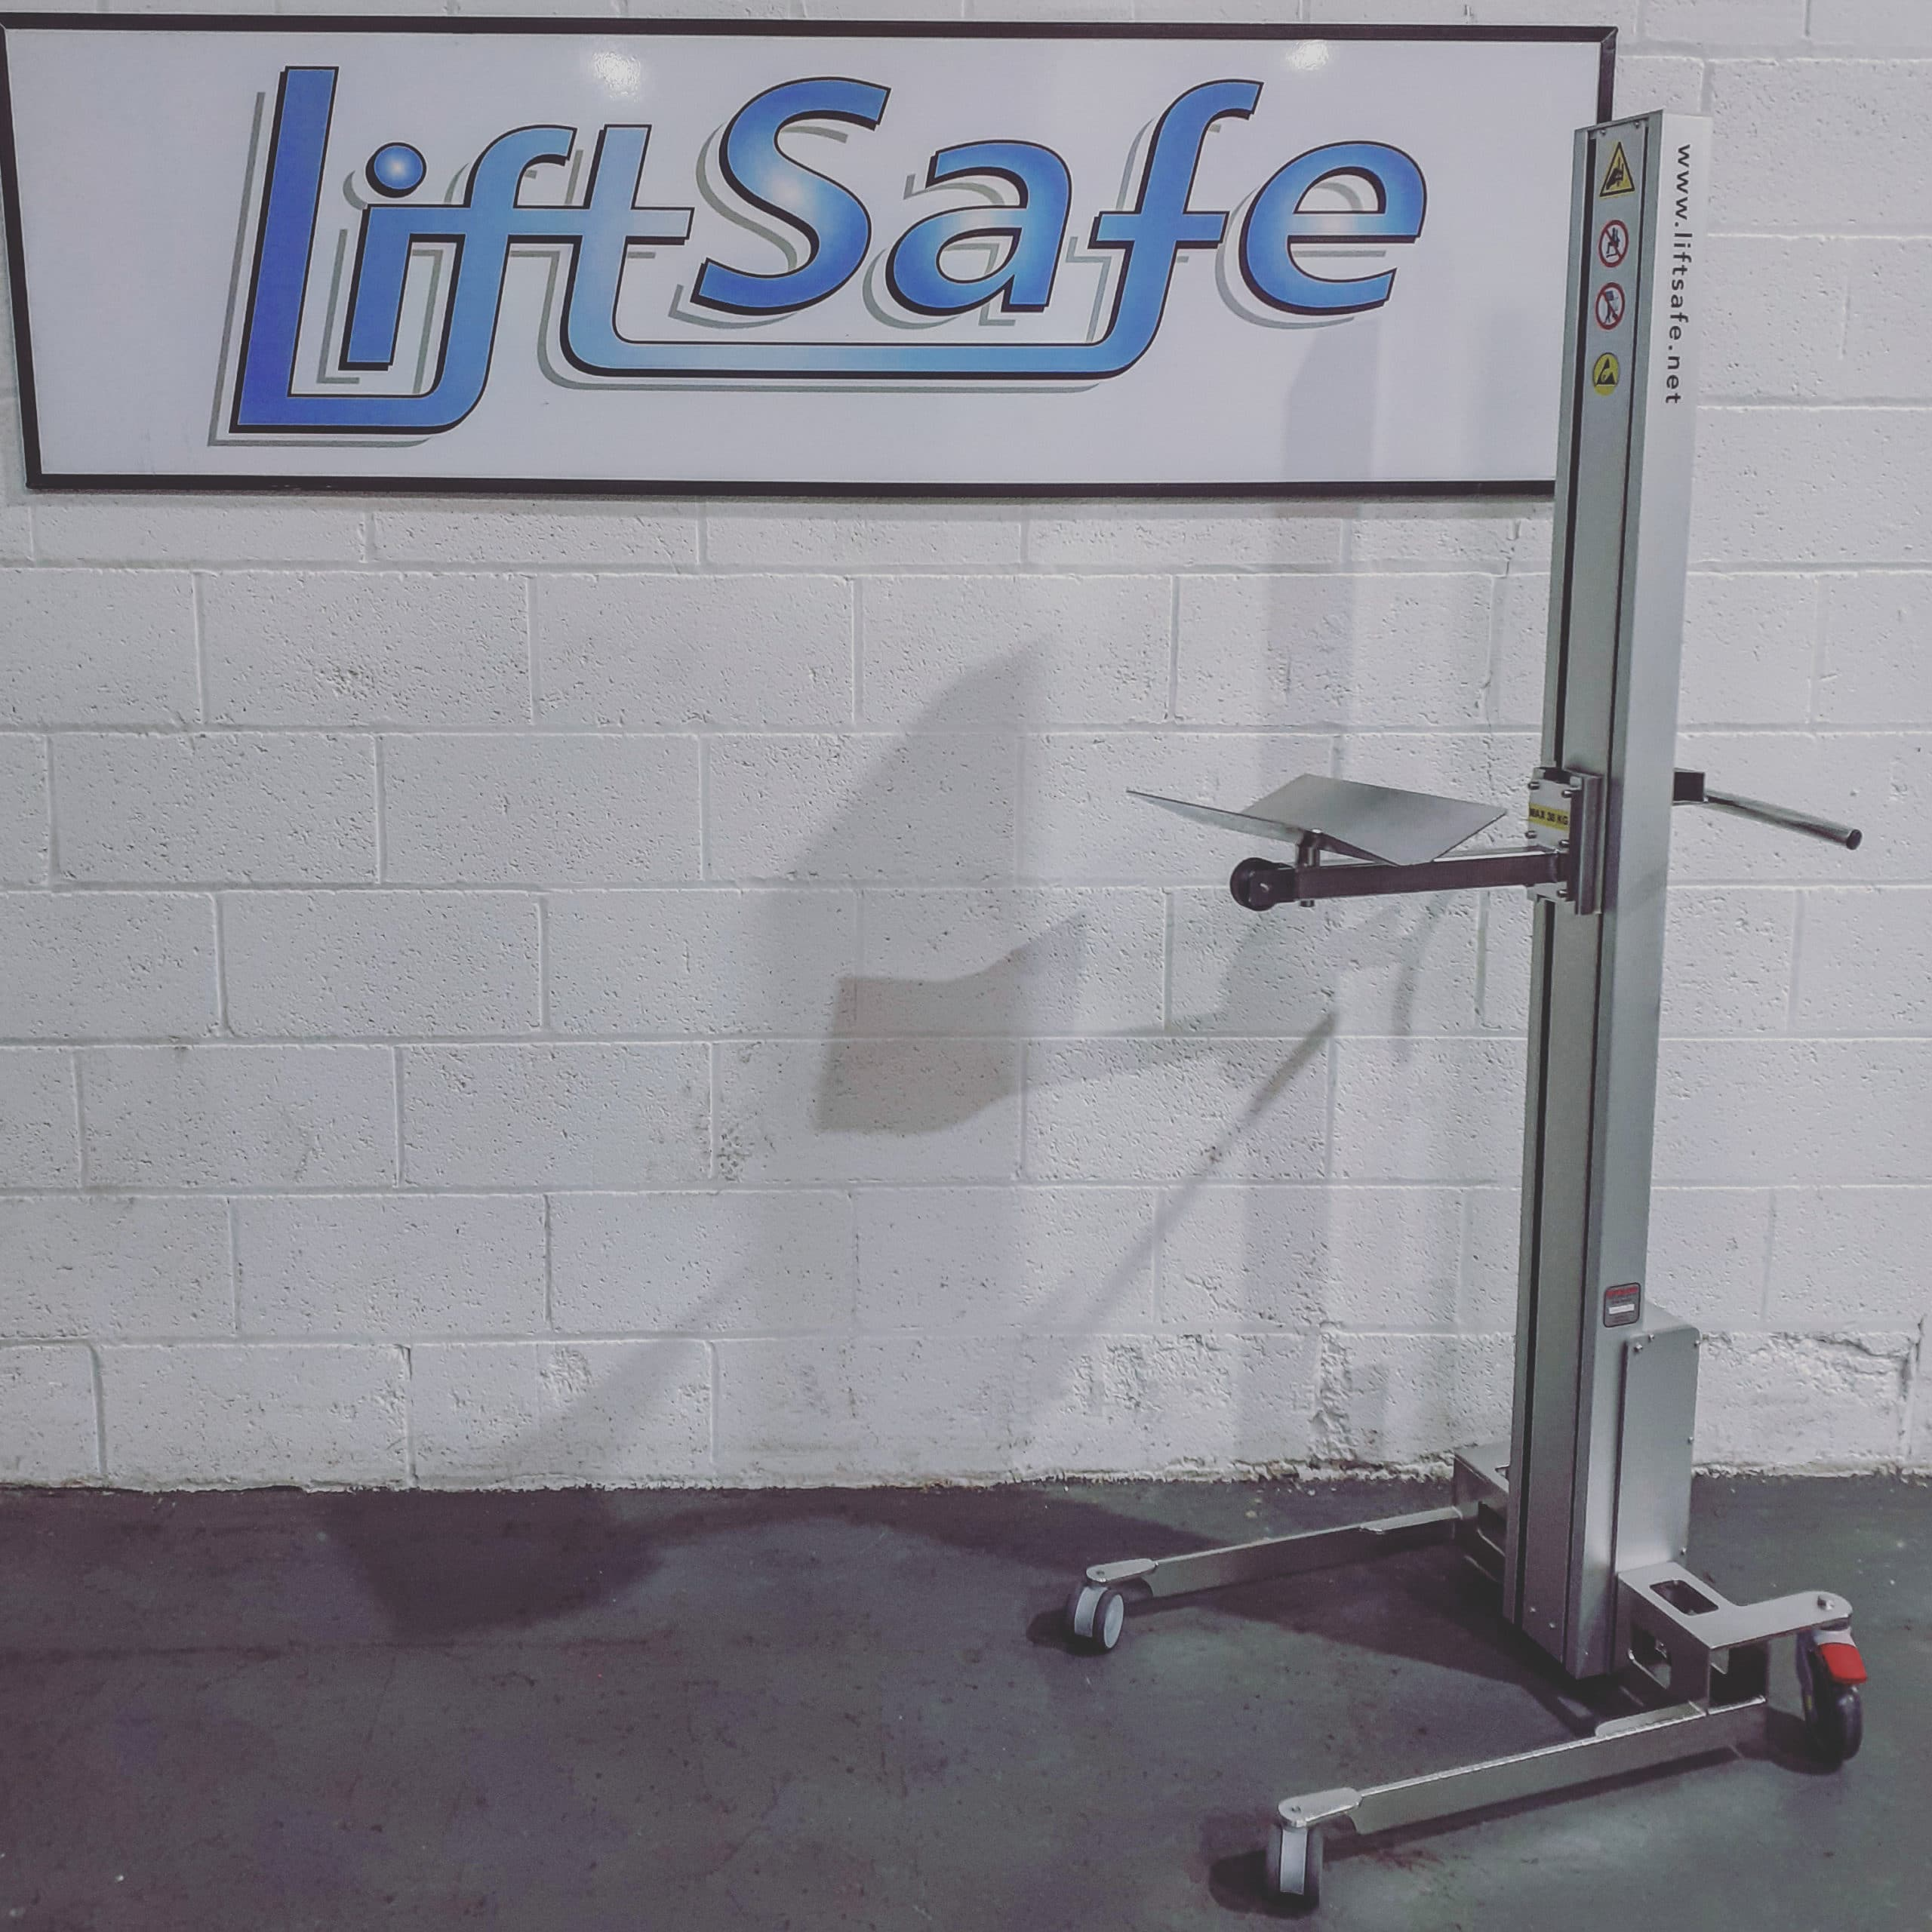 Scottish based pharmaceutical company takes delivery of LSH70 stainless steel lifter from Lift Safe